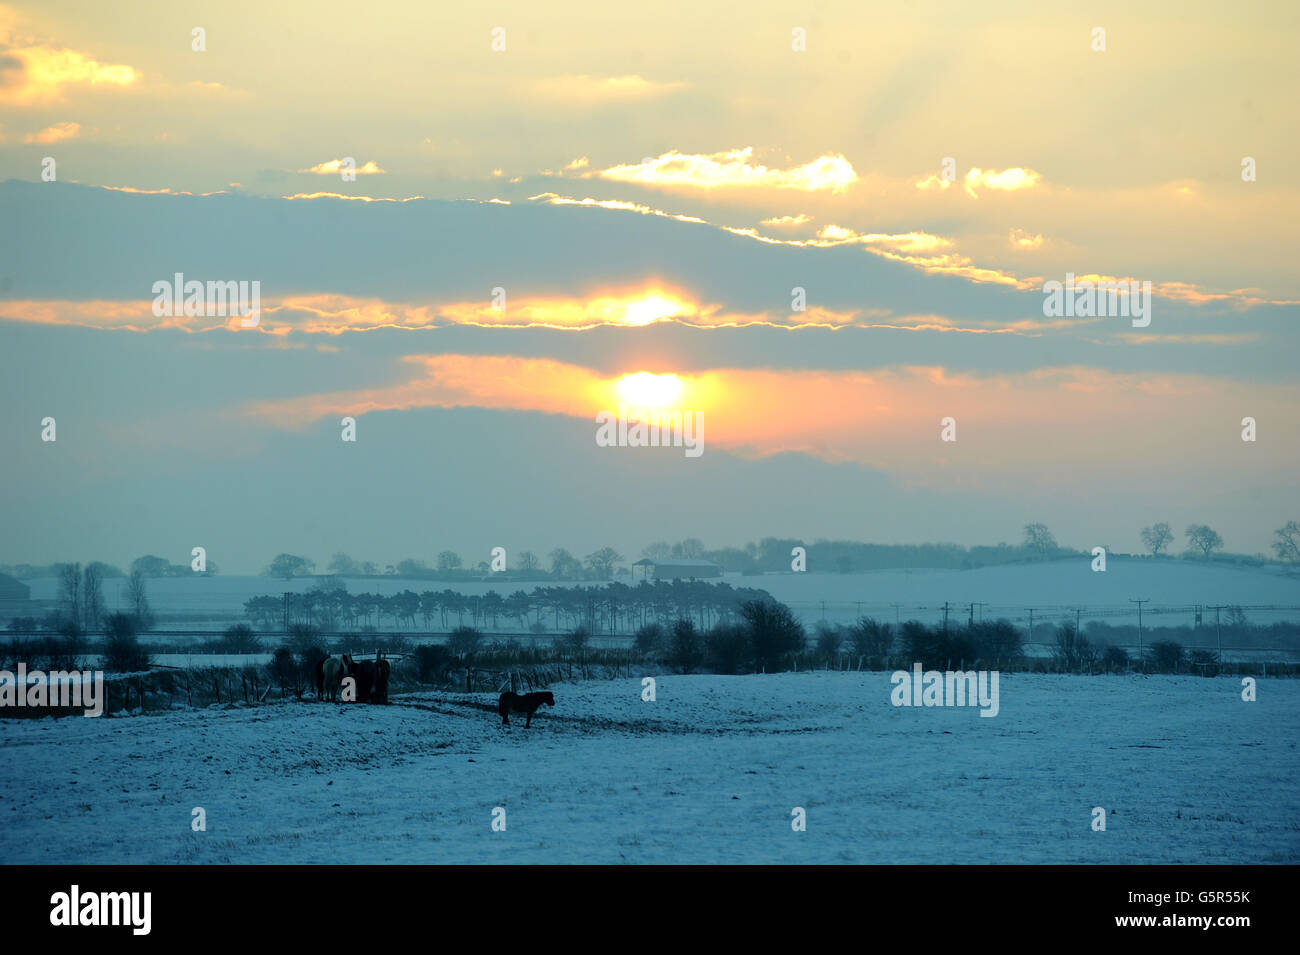 Horses in a snow covered field in the outskirts of Durham today, as the sun rises over County Durham. Stock Photo